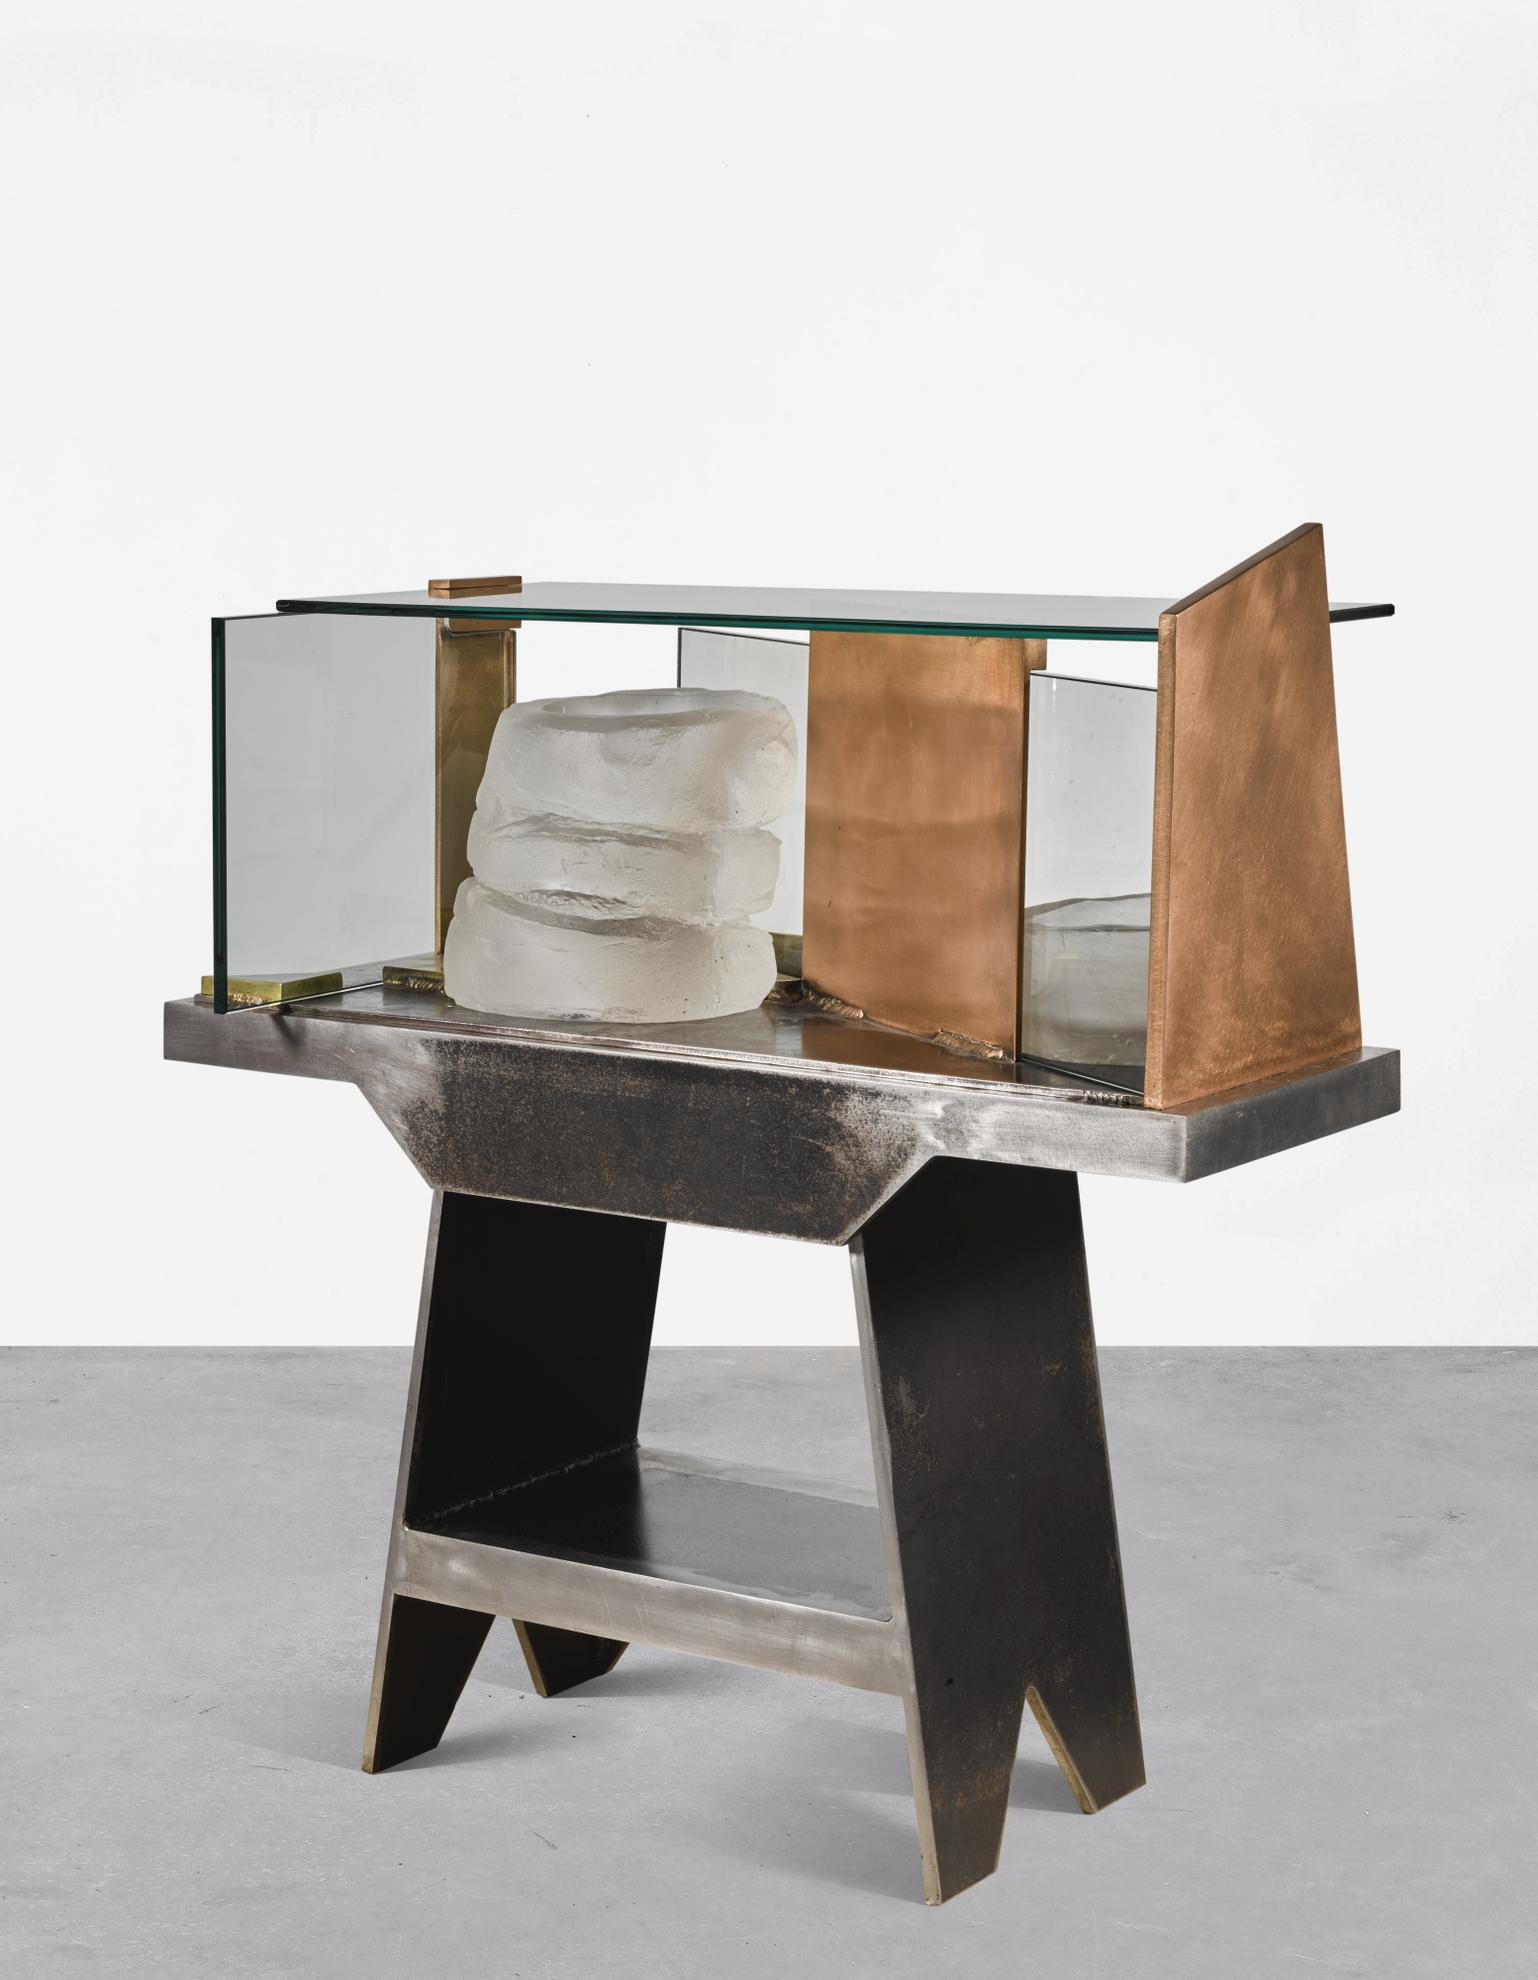 Anthony Caro-Display-2012